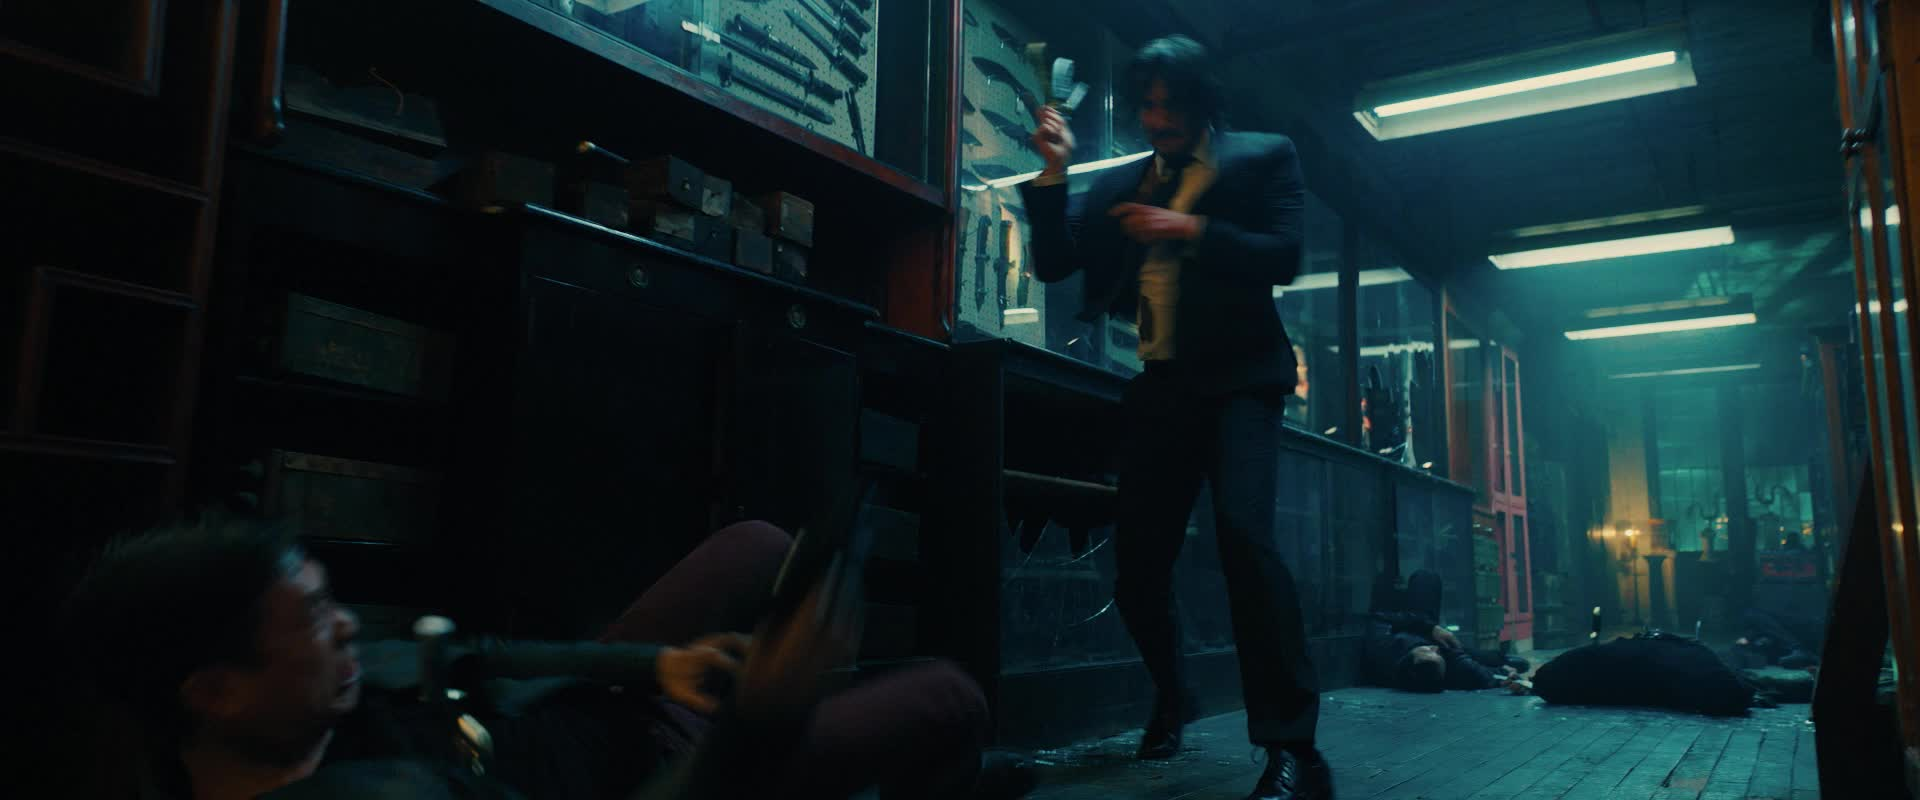 fight, gun, john wick, john wick 3, john wick chapter 3, john wick chapter 3 parabellum, keanu reeves, knife, John Wick Gun Knife Fight GIFs